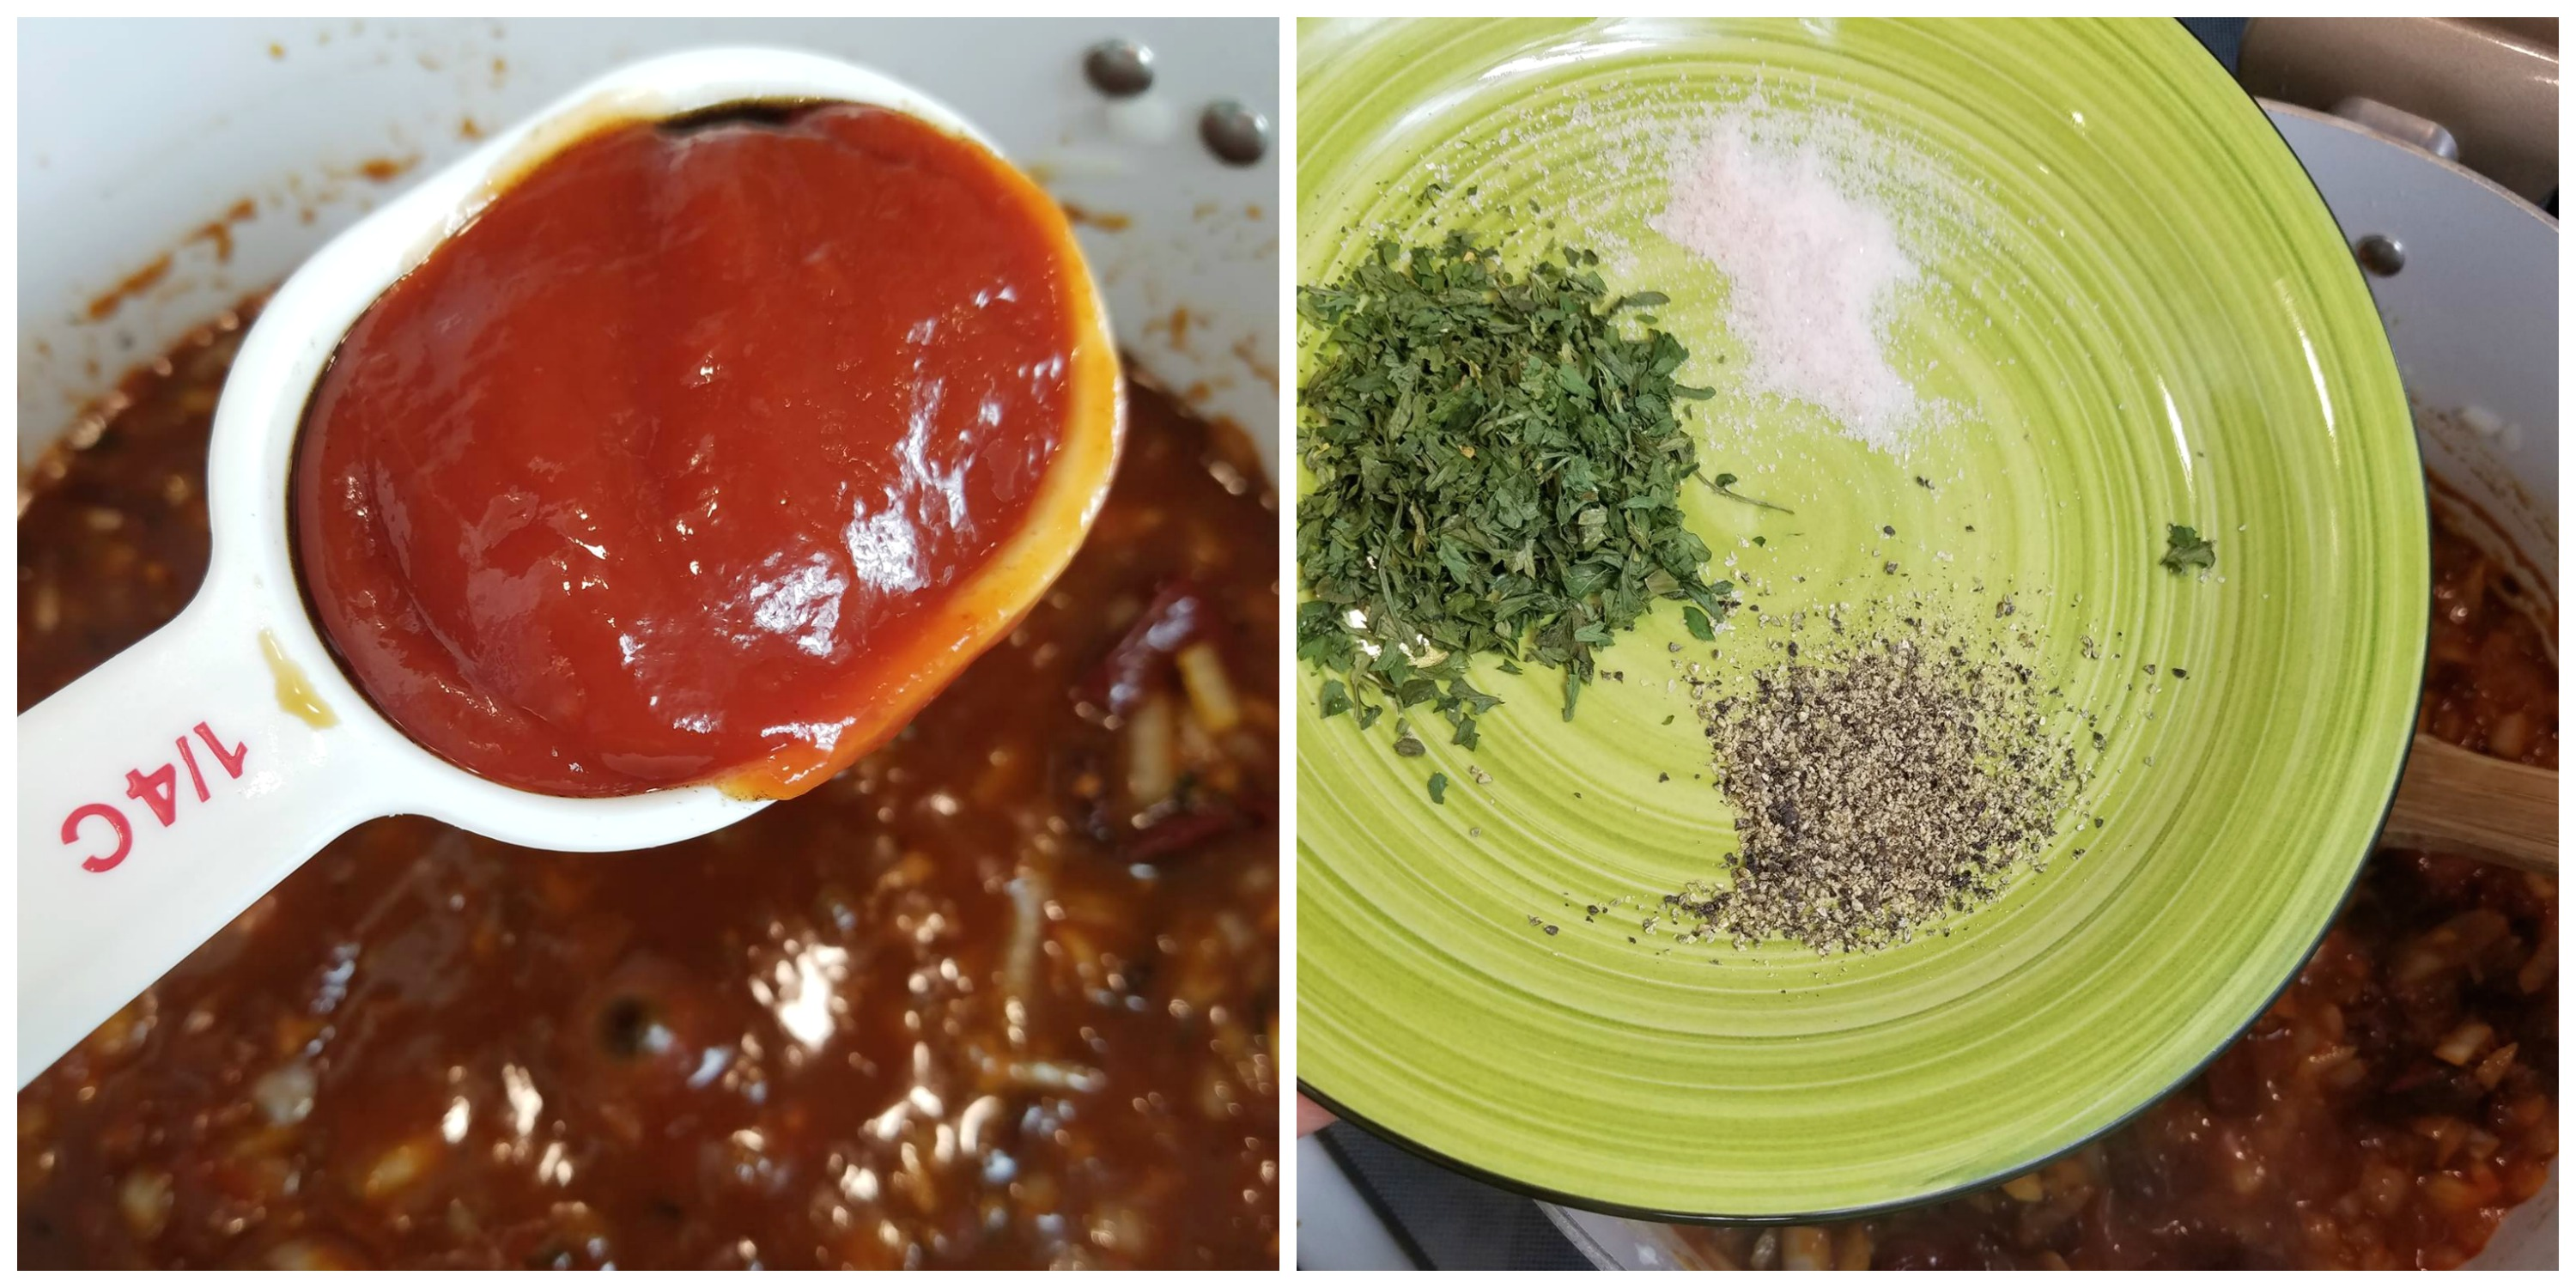 Homemade spicy chipotle BBQ Sauce